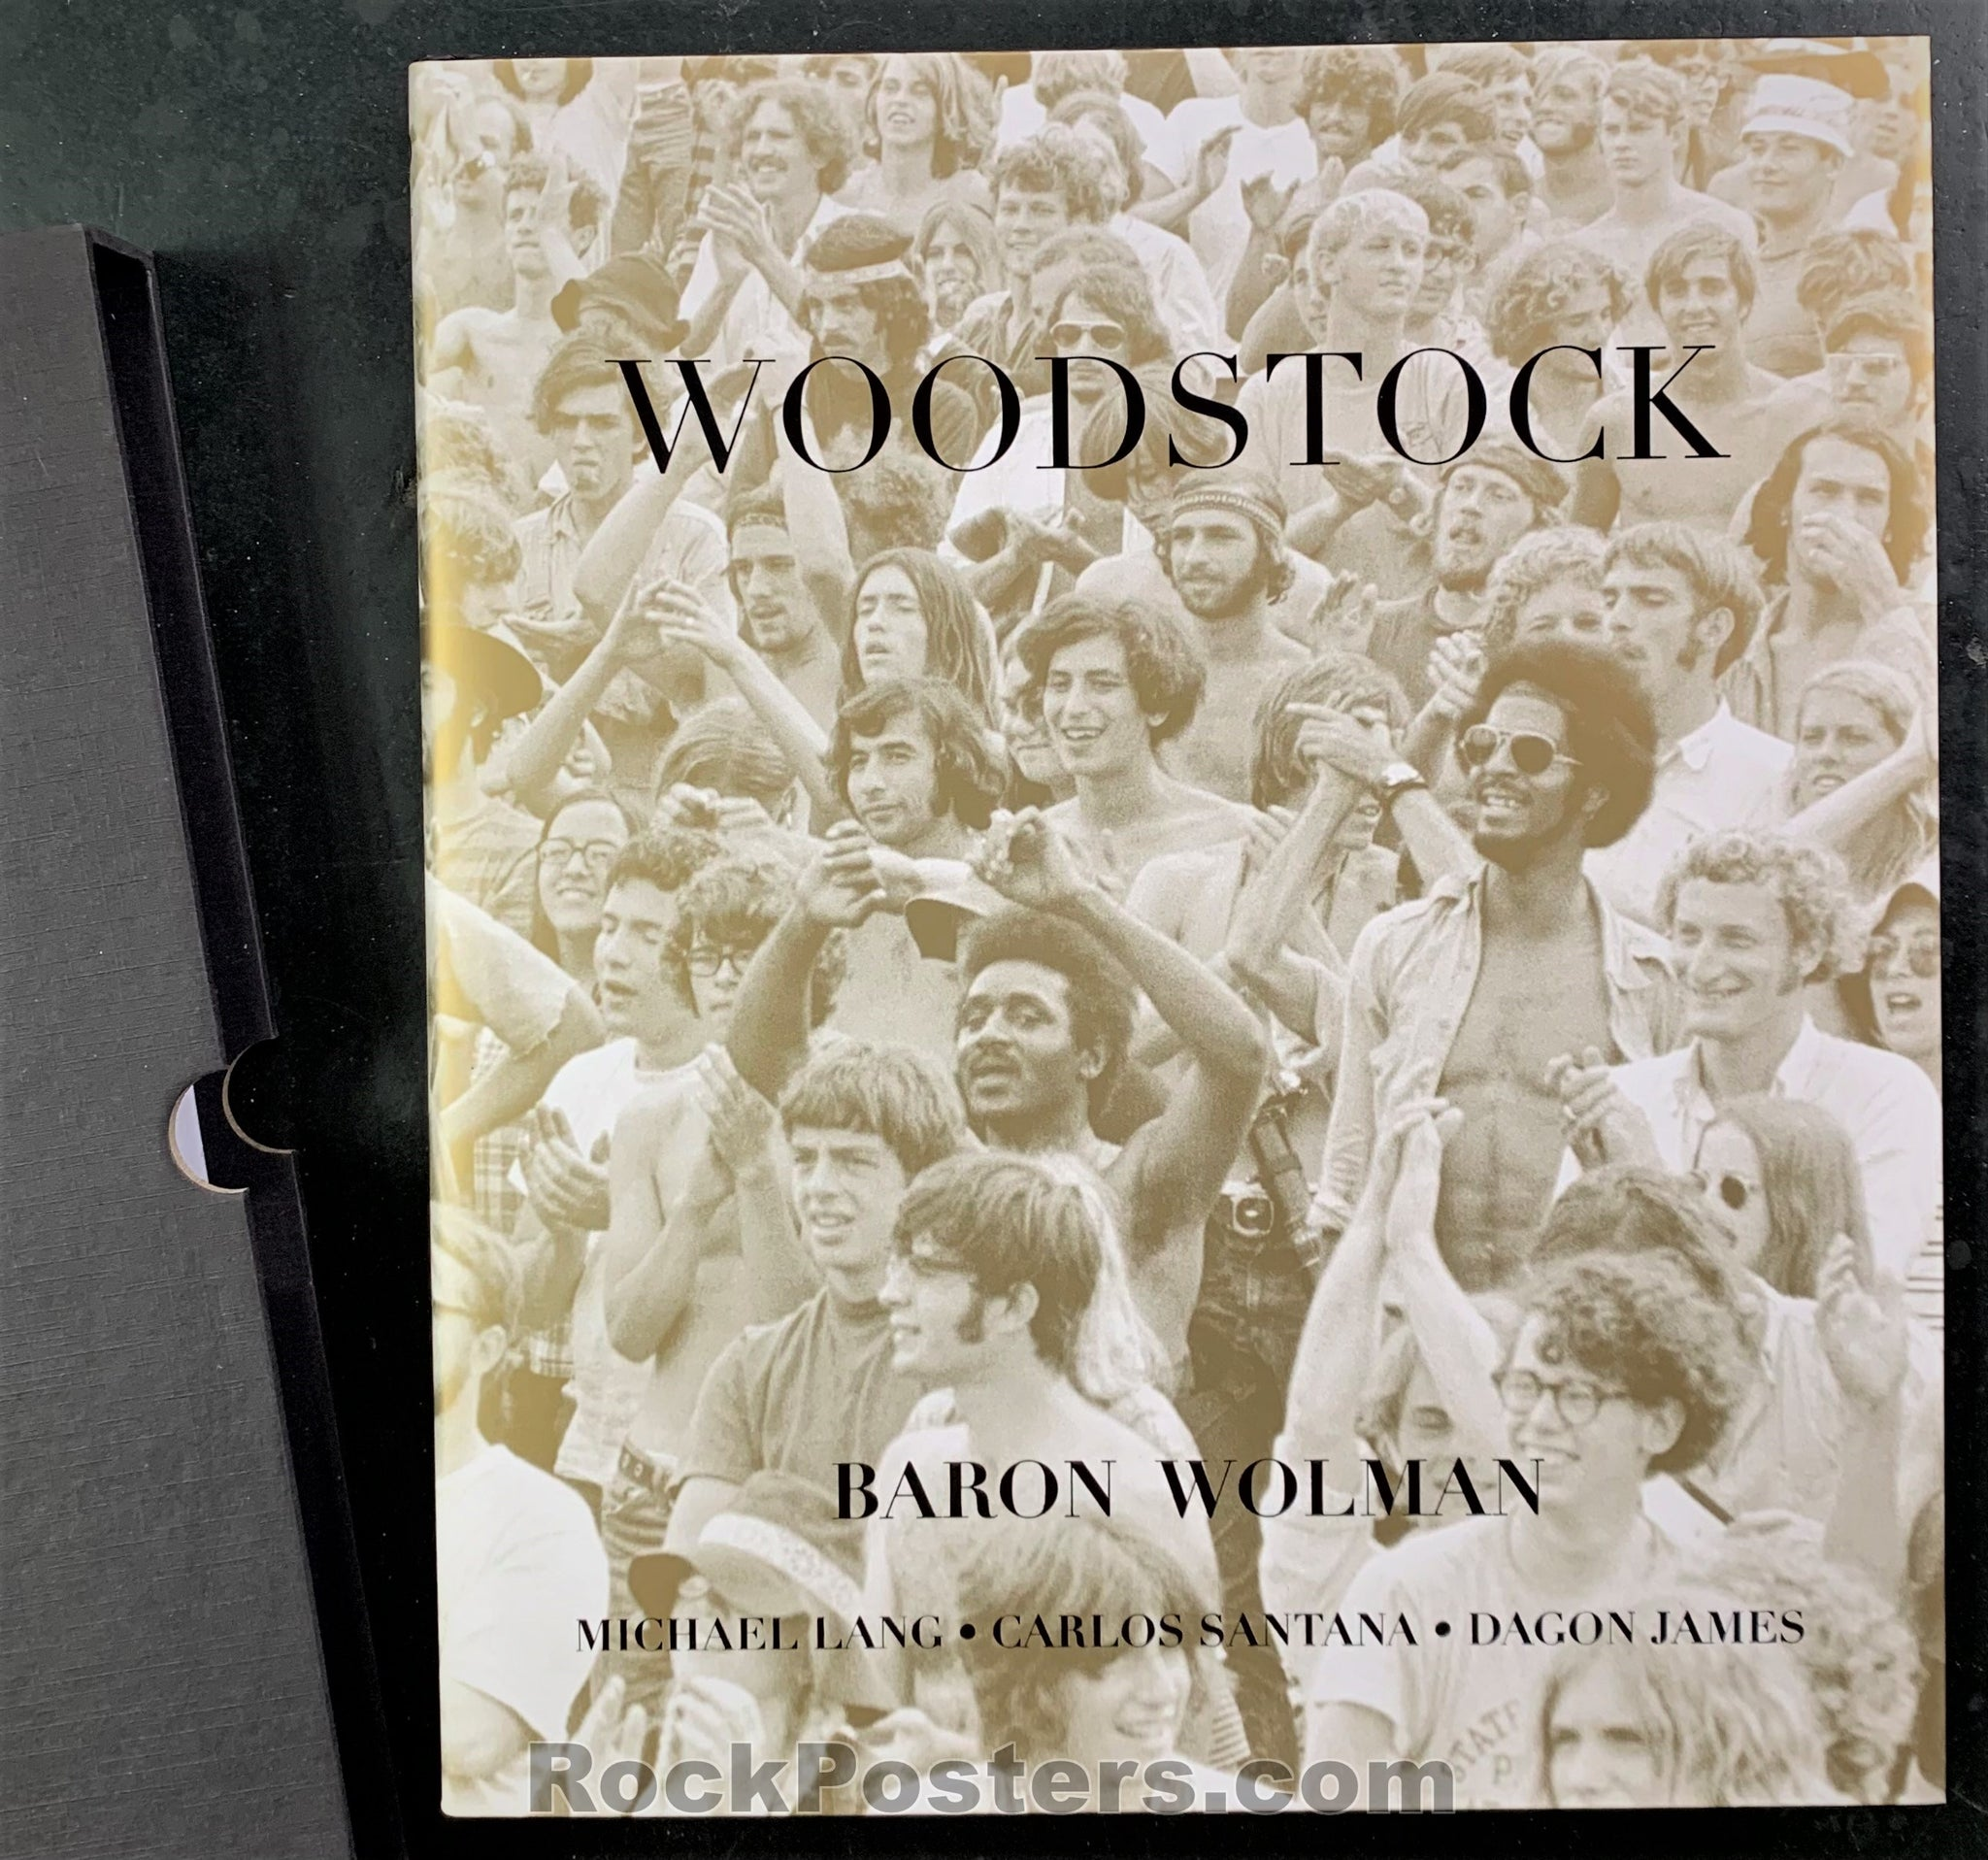 AUCTION - Woodstock - Signed Baron Wolman Photo Book with Ticket - Mint